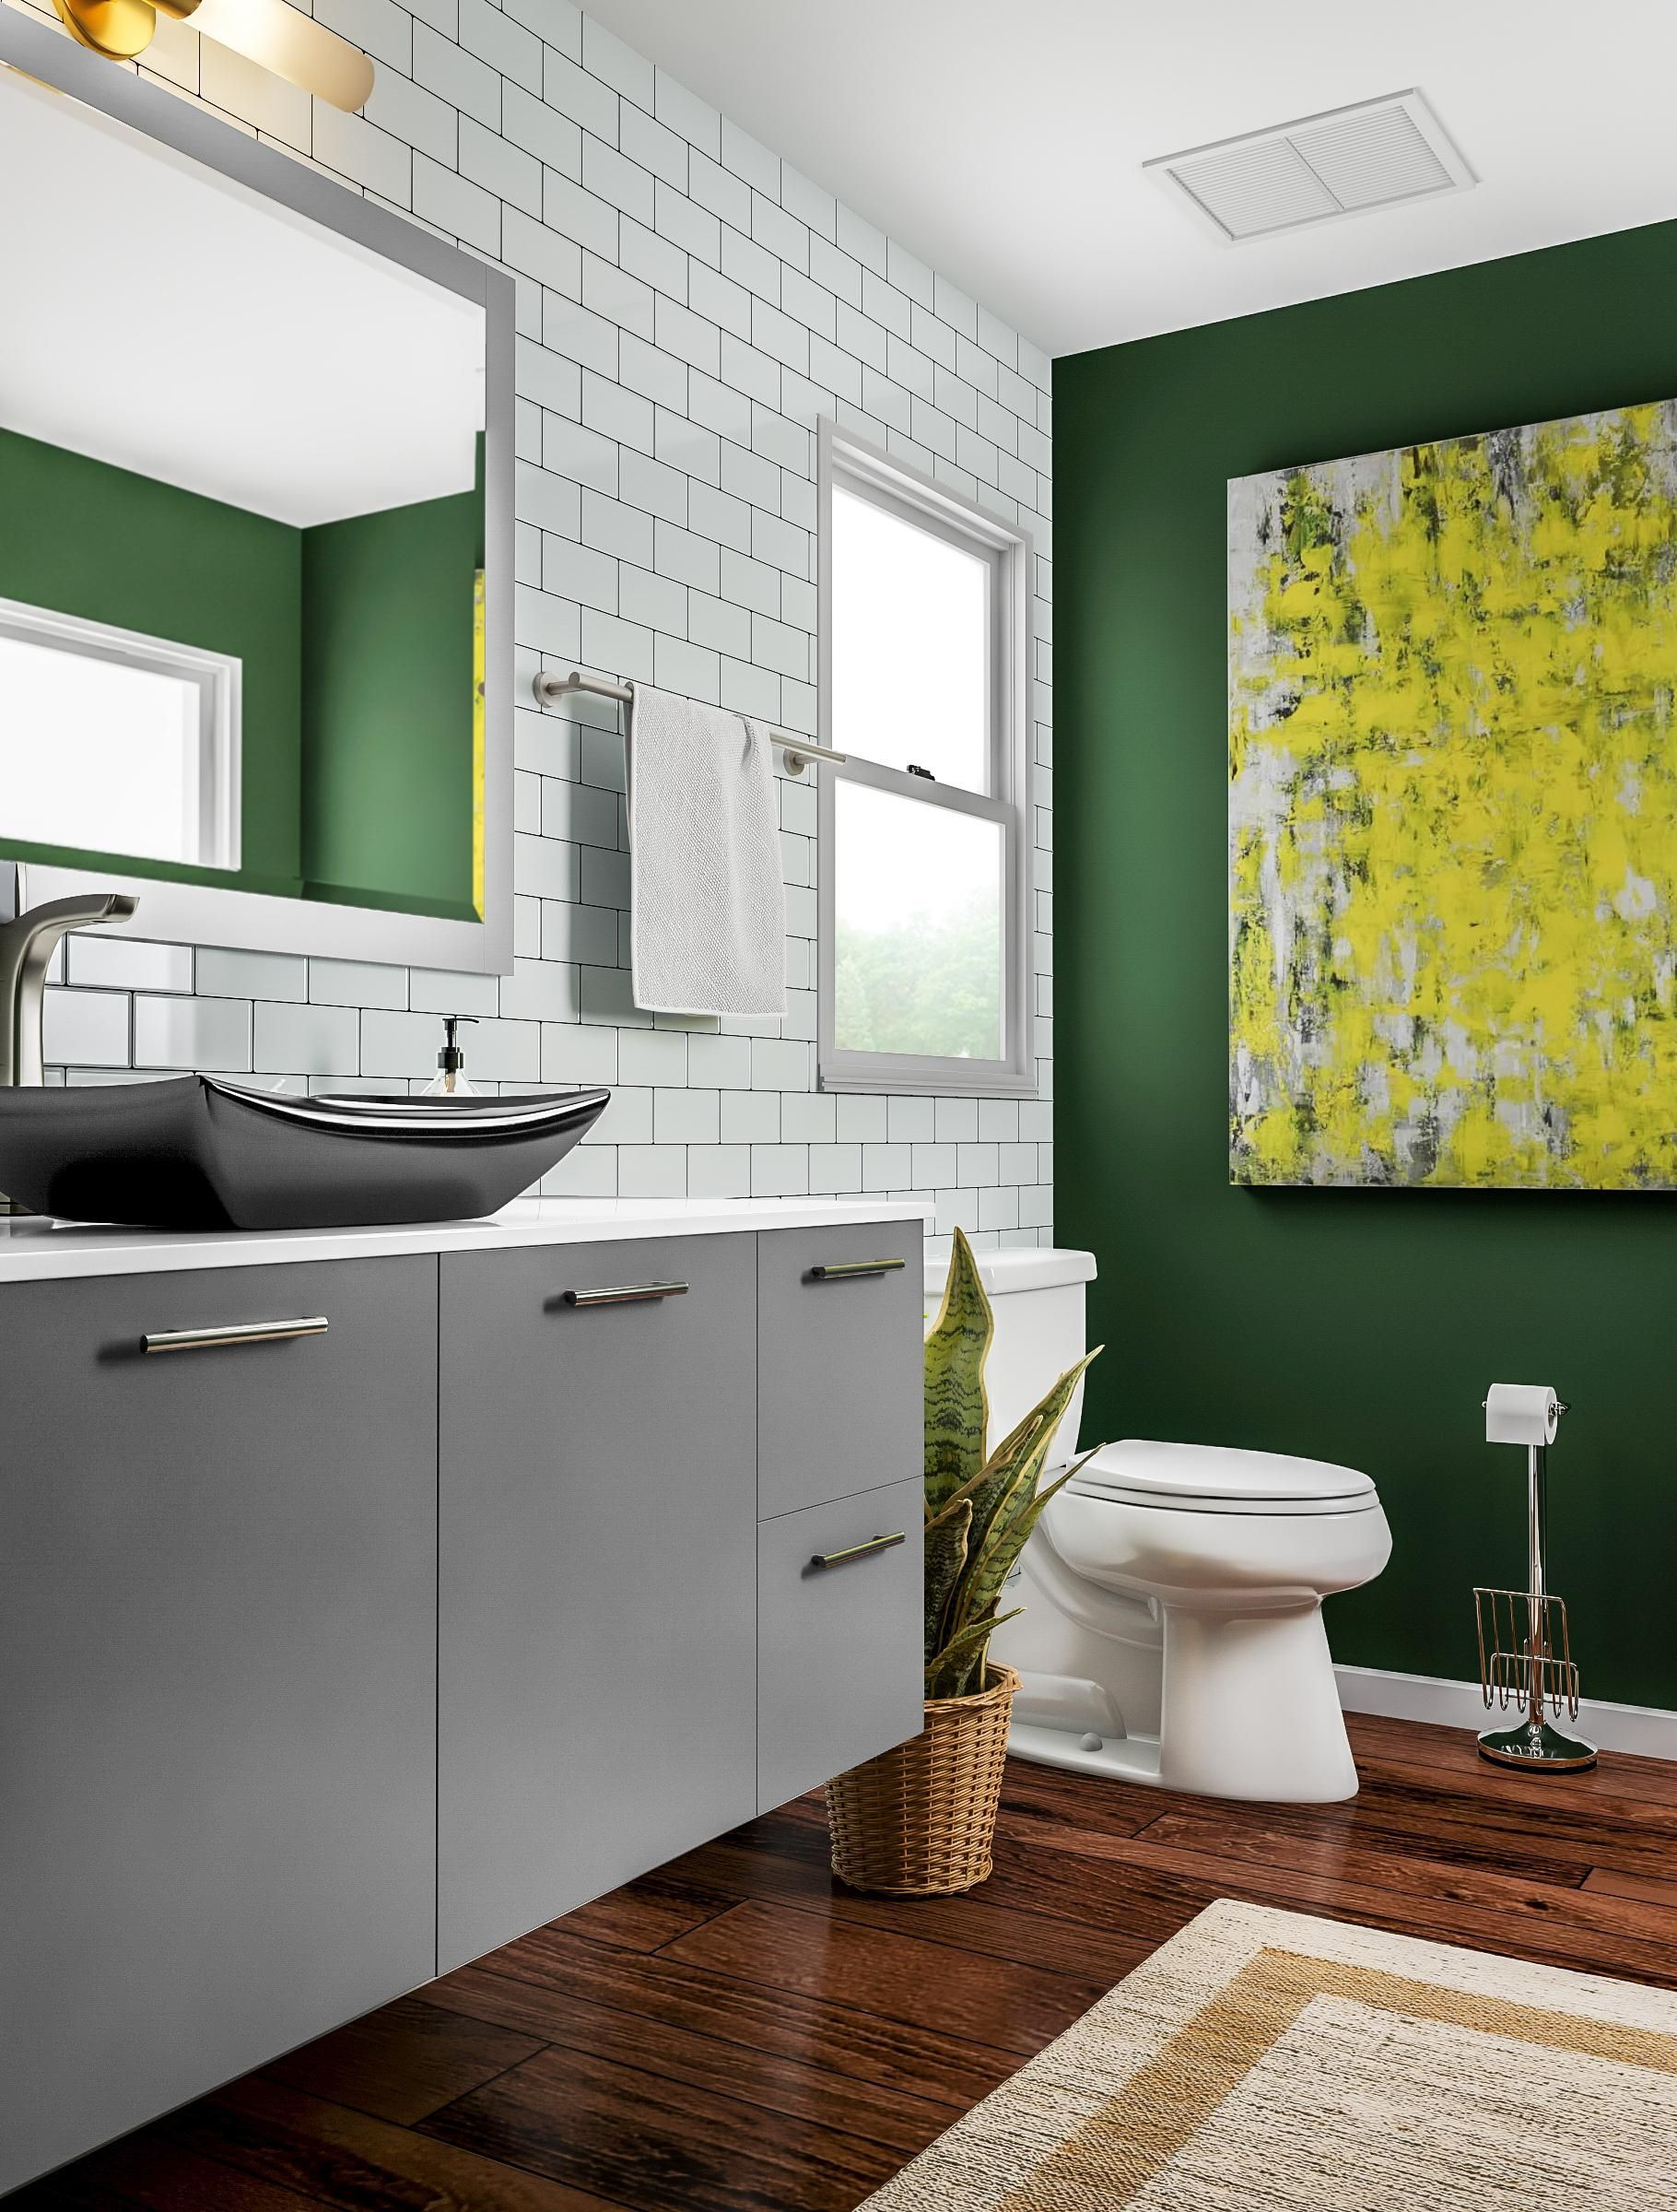 Add A Dash Of Luck To Your Renovation With A Shamrock Green Accent Wall This Bathroom Stays Stately Wi Green Bathroom Colors Green Bathroom Green Accent Walls